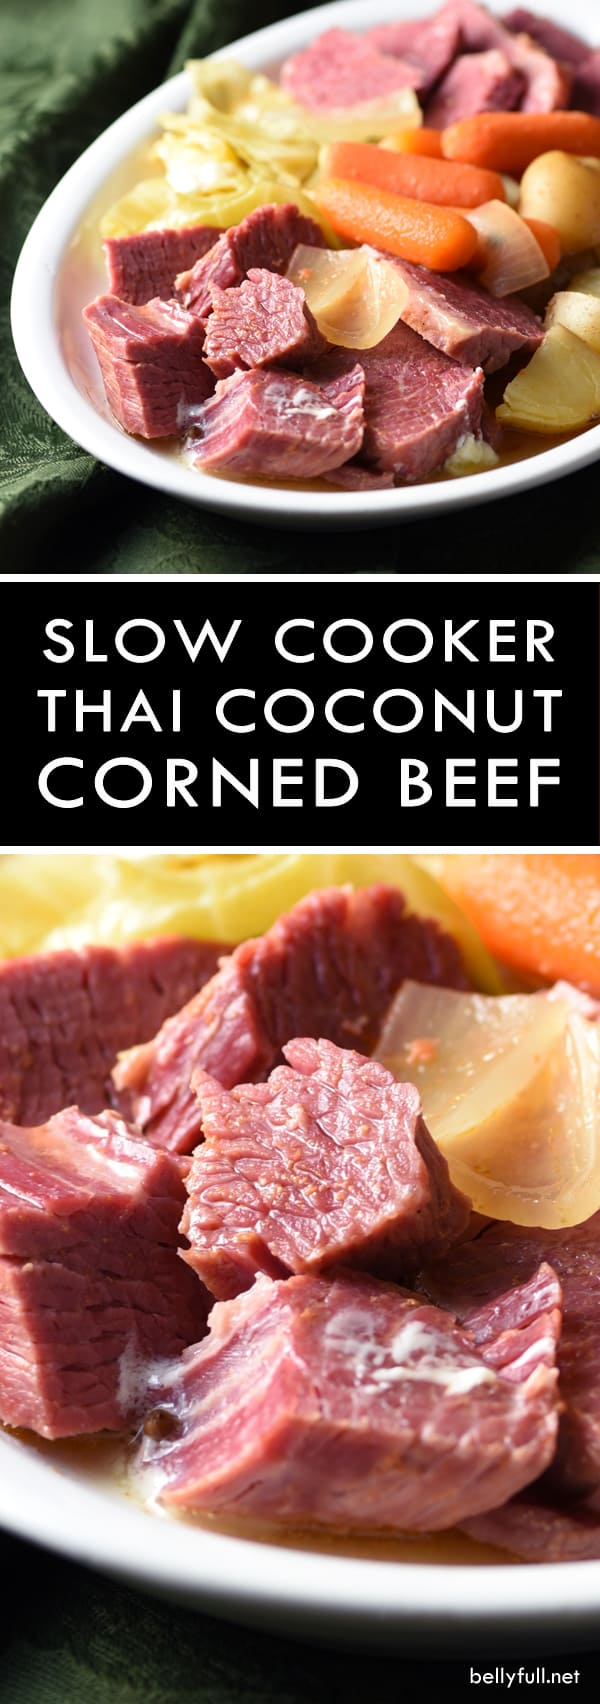 Slow Cooker Thai Coconut Corned Beef and Cabbage - red curry paste and coconut milk give this typical meal a Thai flair, that's subtly sweet and rich. All done in the crockpot. The wonderful broth lends itself toward a great soup, too!